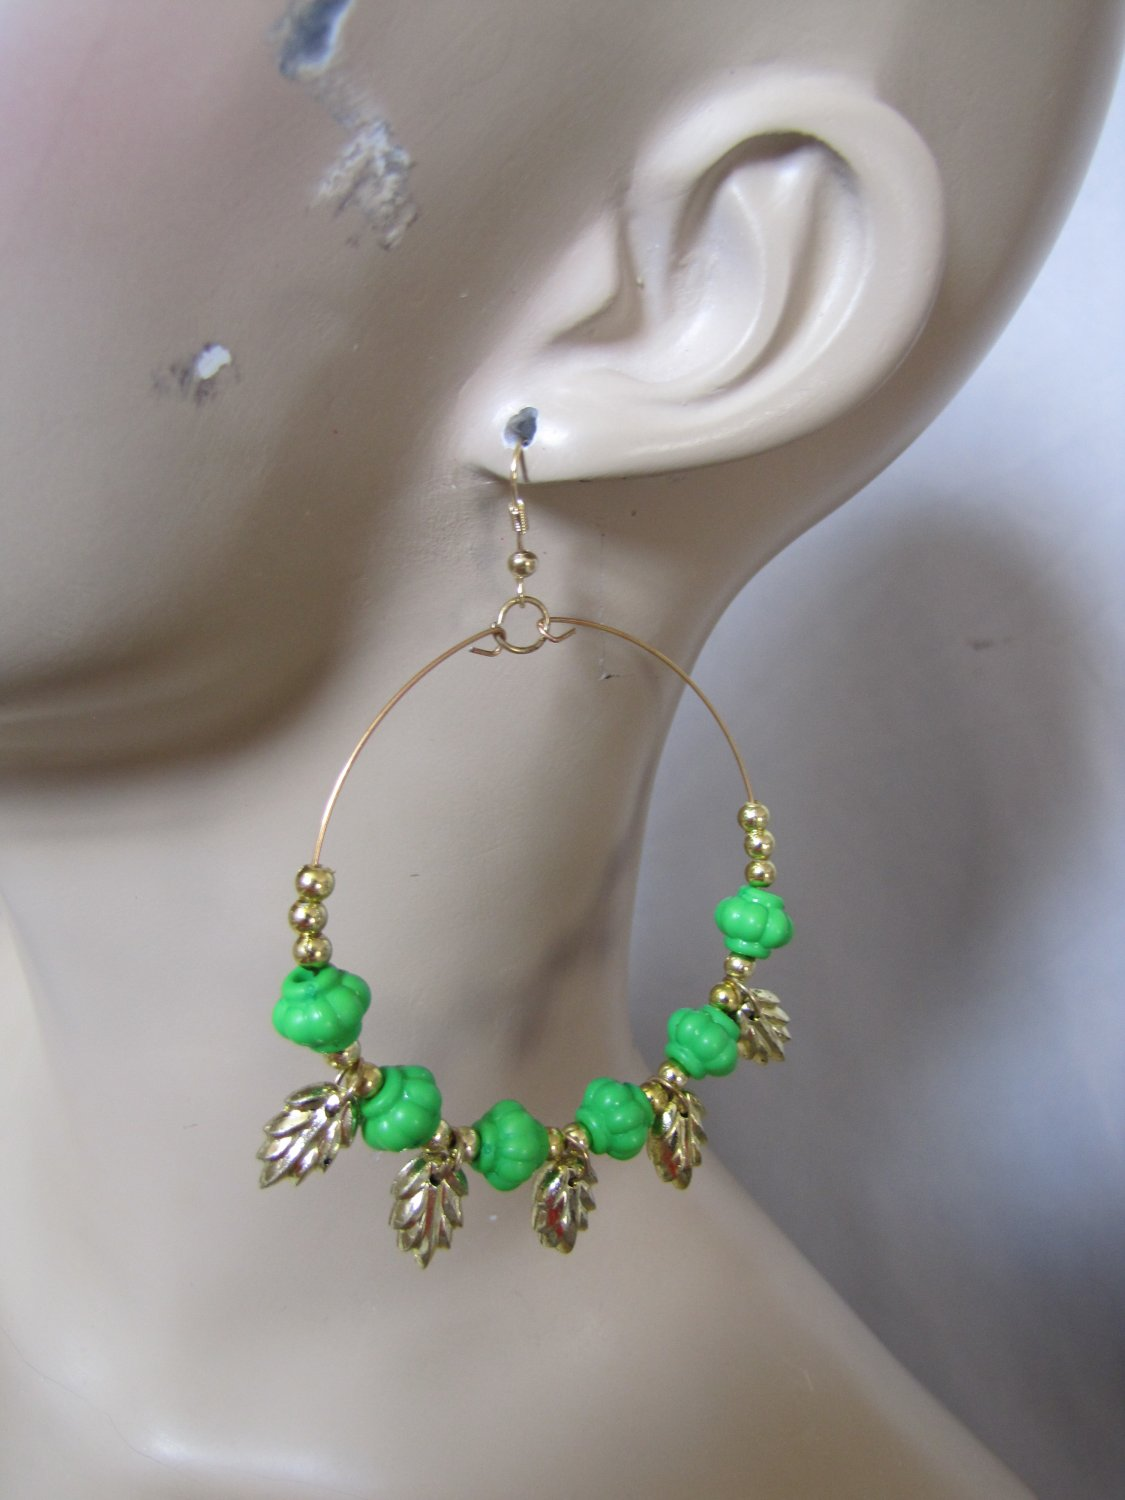 Fashion Hoop Earrings with Green Beads & Leaf Detail